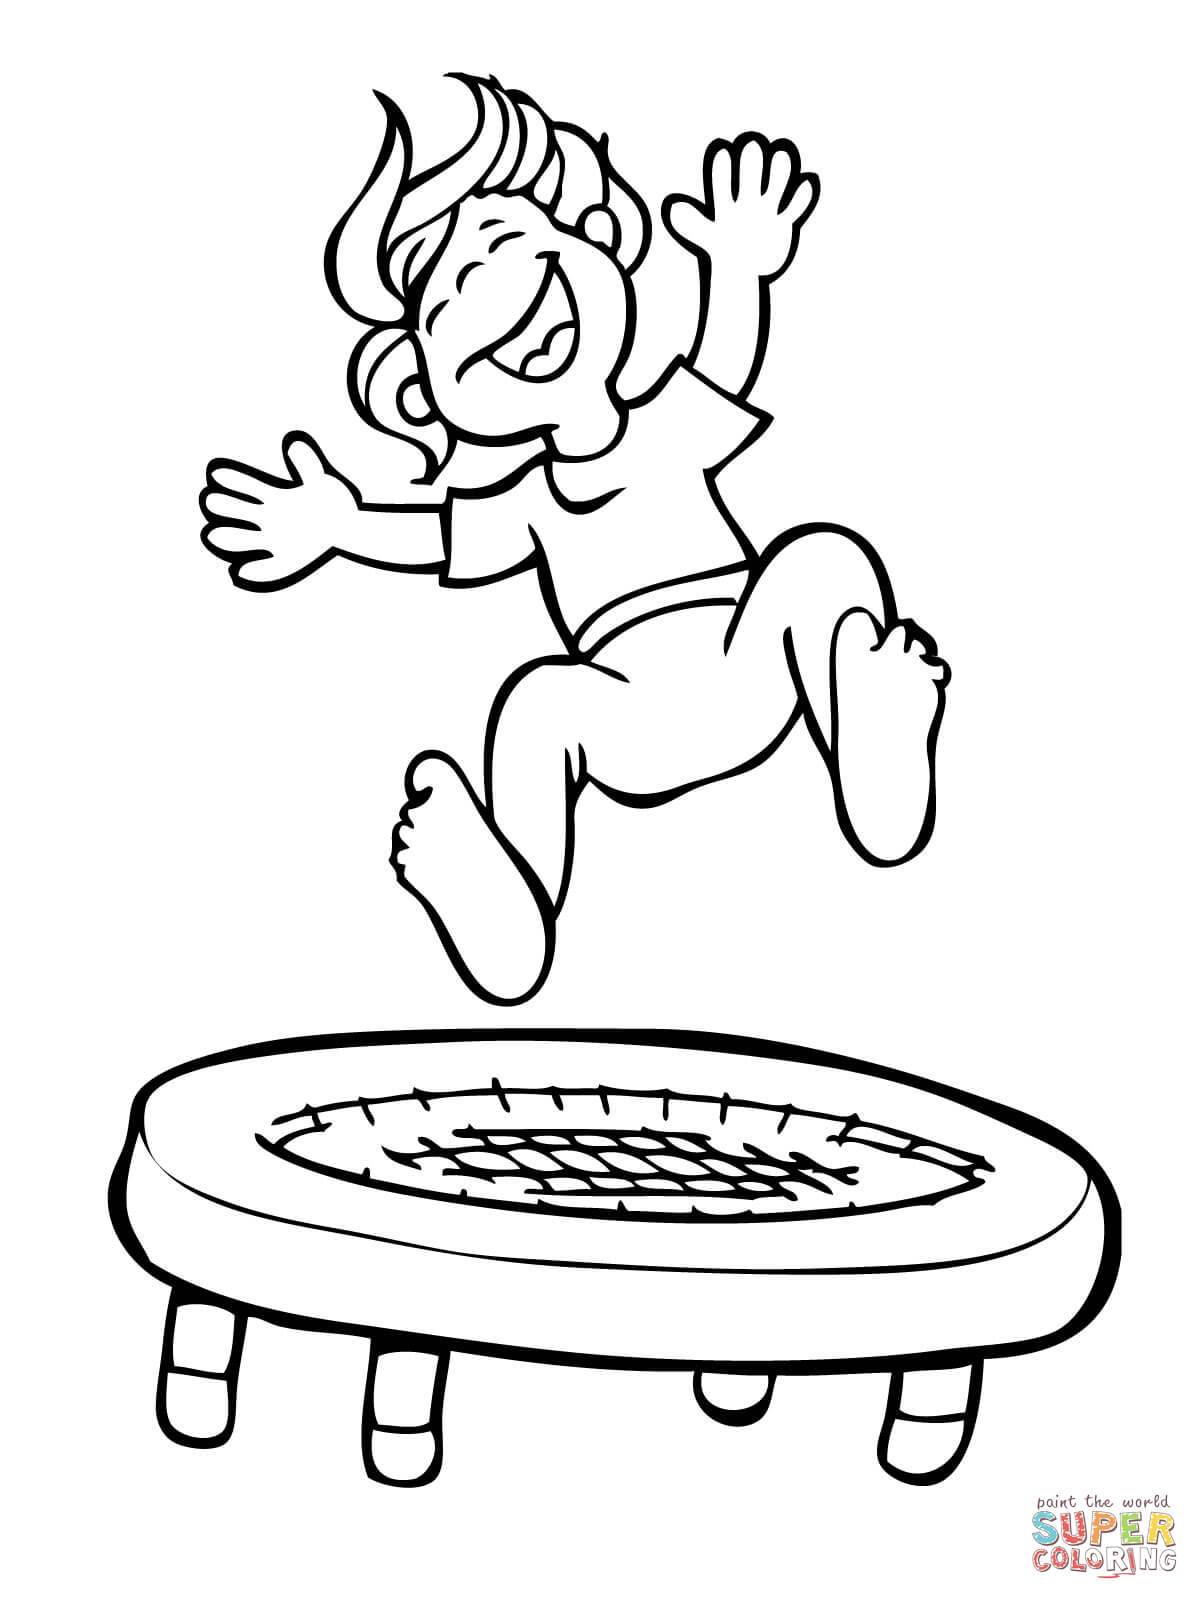 Trampoline Clipart Black And White